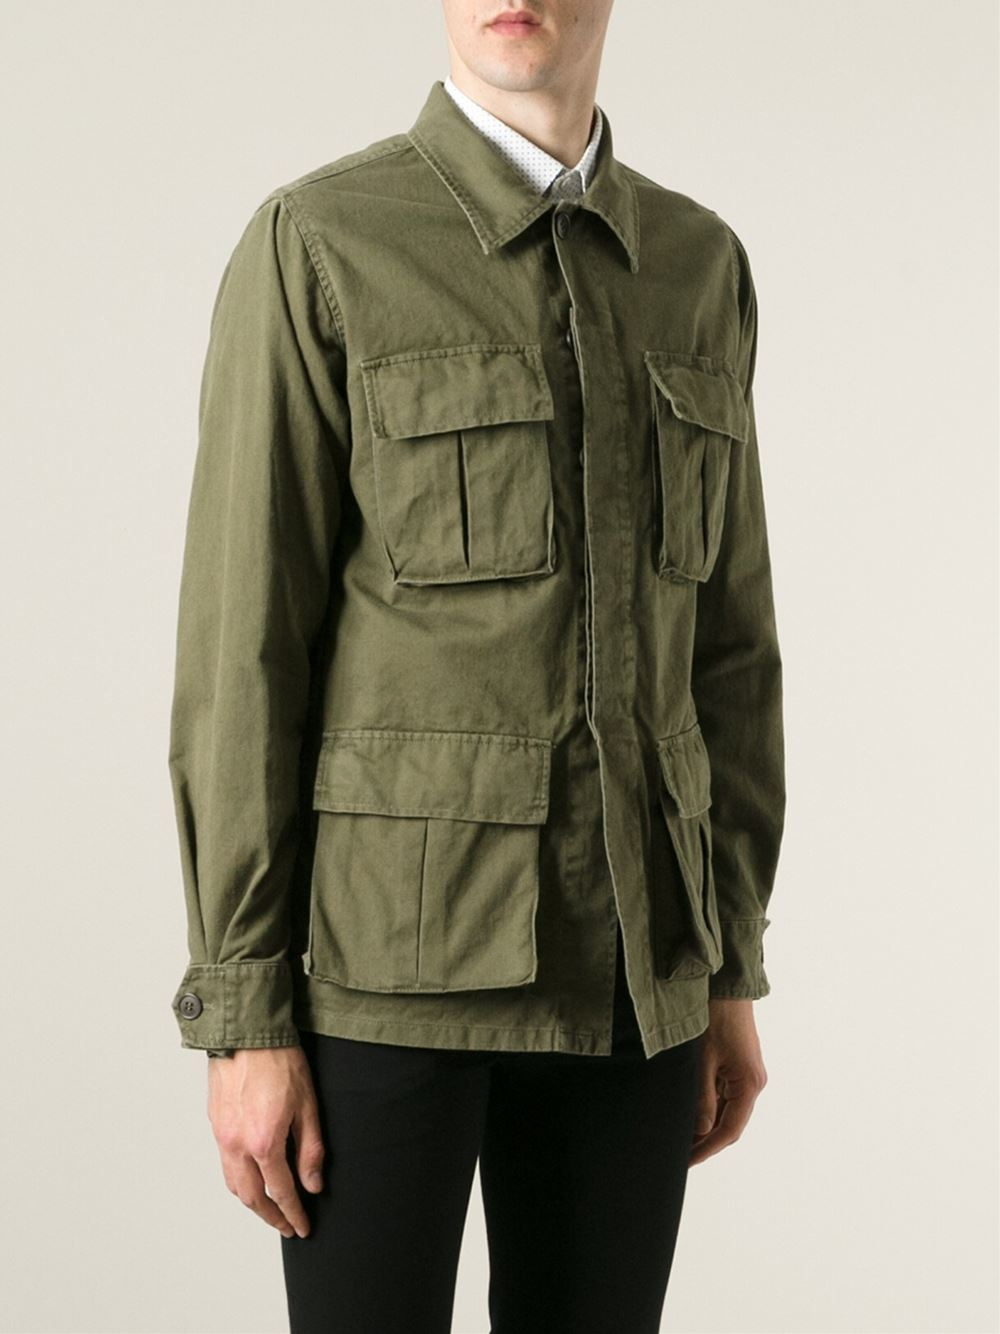 saint laurent embroidered military jacket in green for men